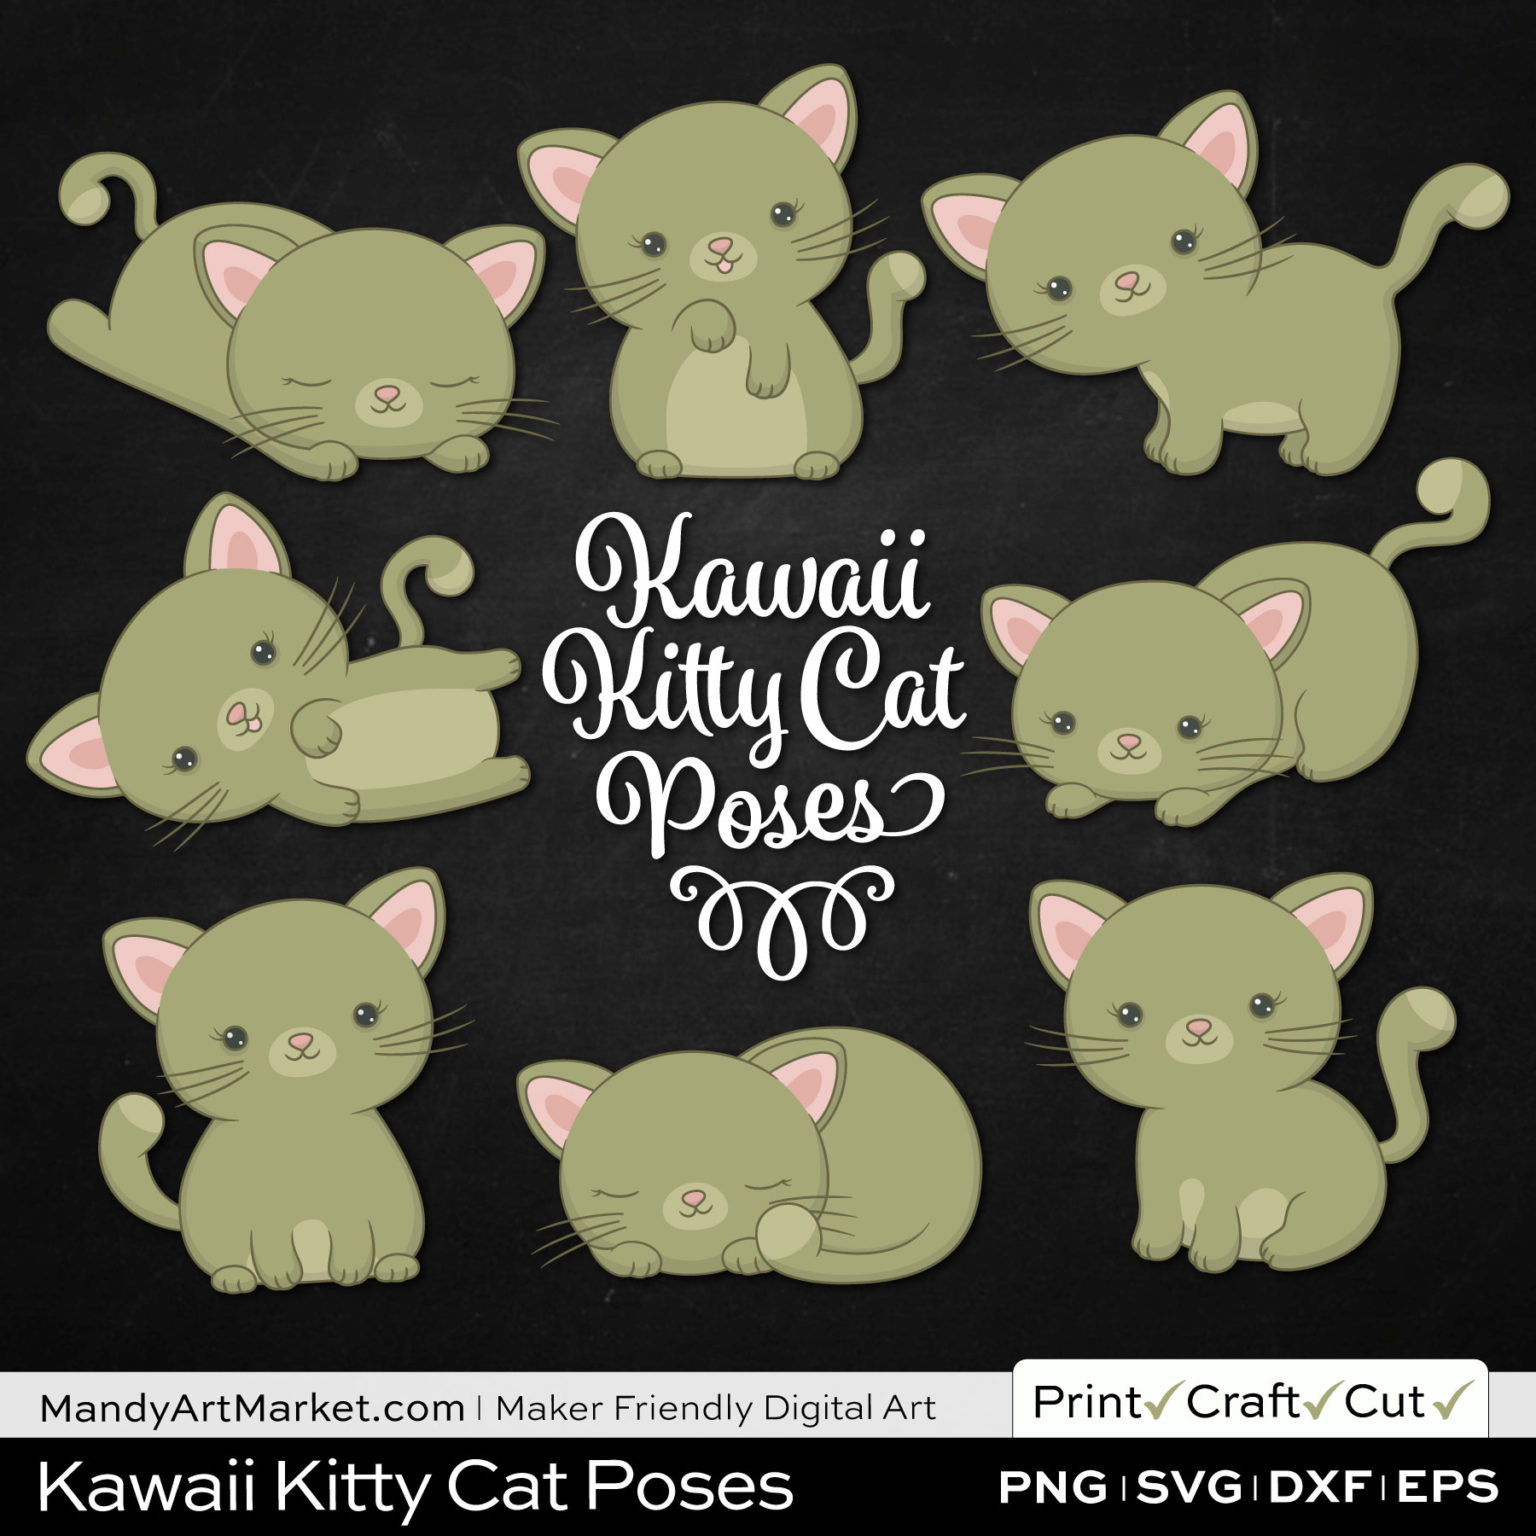 Army Green Kawaii Kitty Cat Poses Clipart on Black Background